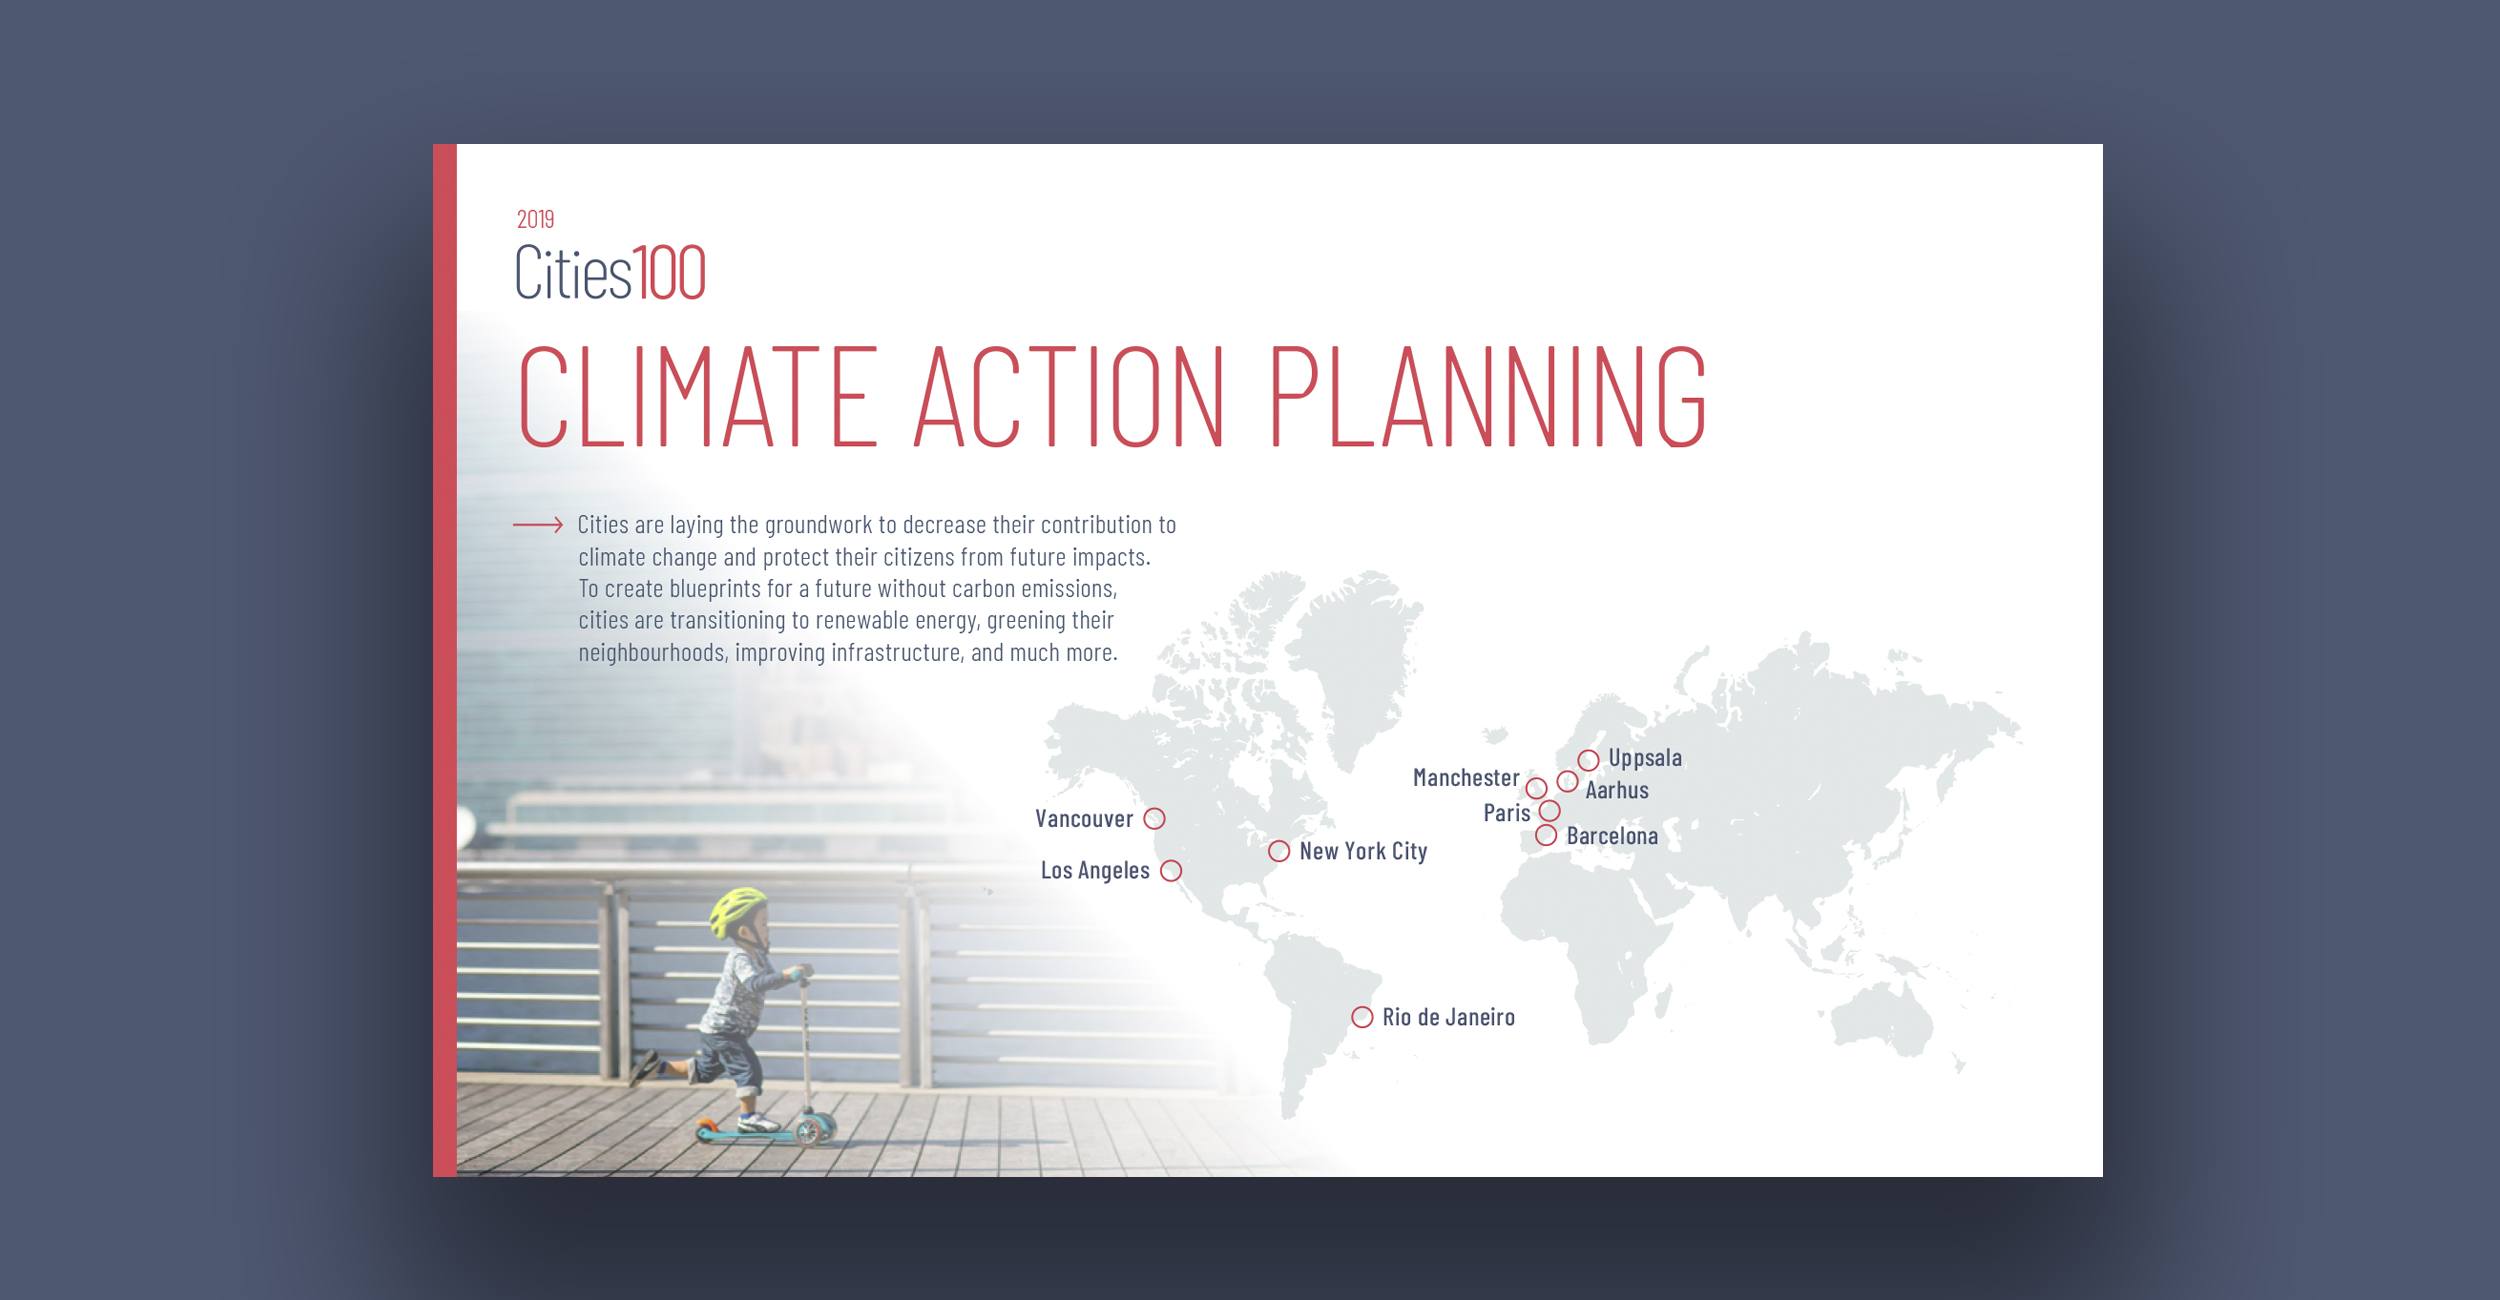 Climate Action Planning - Cities are laying the groundwork to decrease their contribution to climate change and protect their citizens from future impacts. To create blueprints for a future without carbon emissions, cities are transitioning to renewable energy, greening their neighbourhoods, improving infrastructure, and much more.